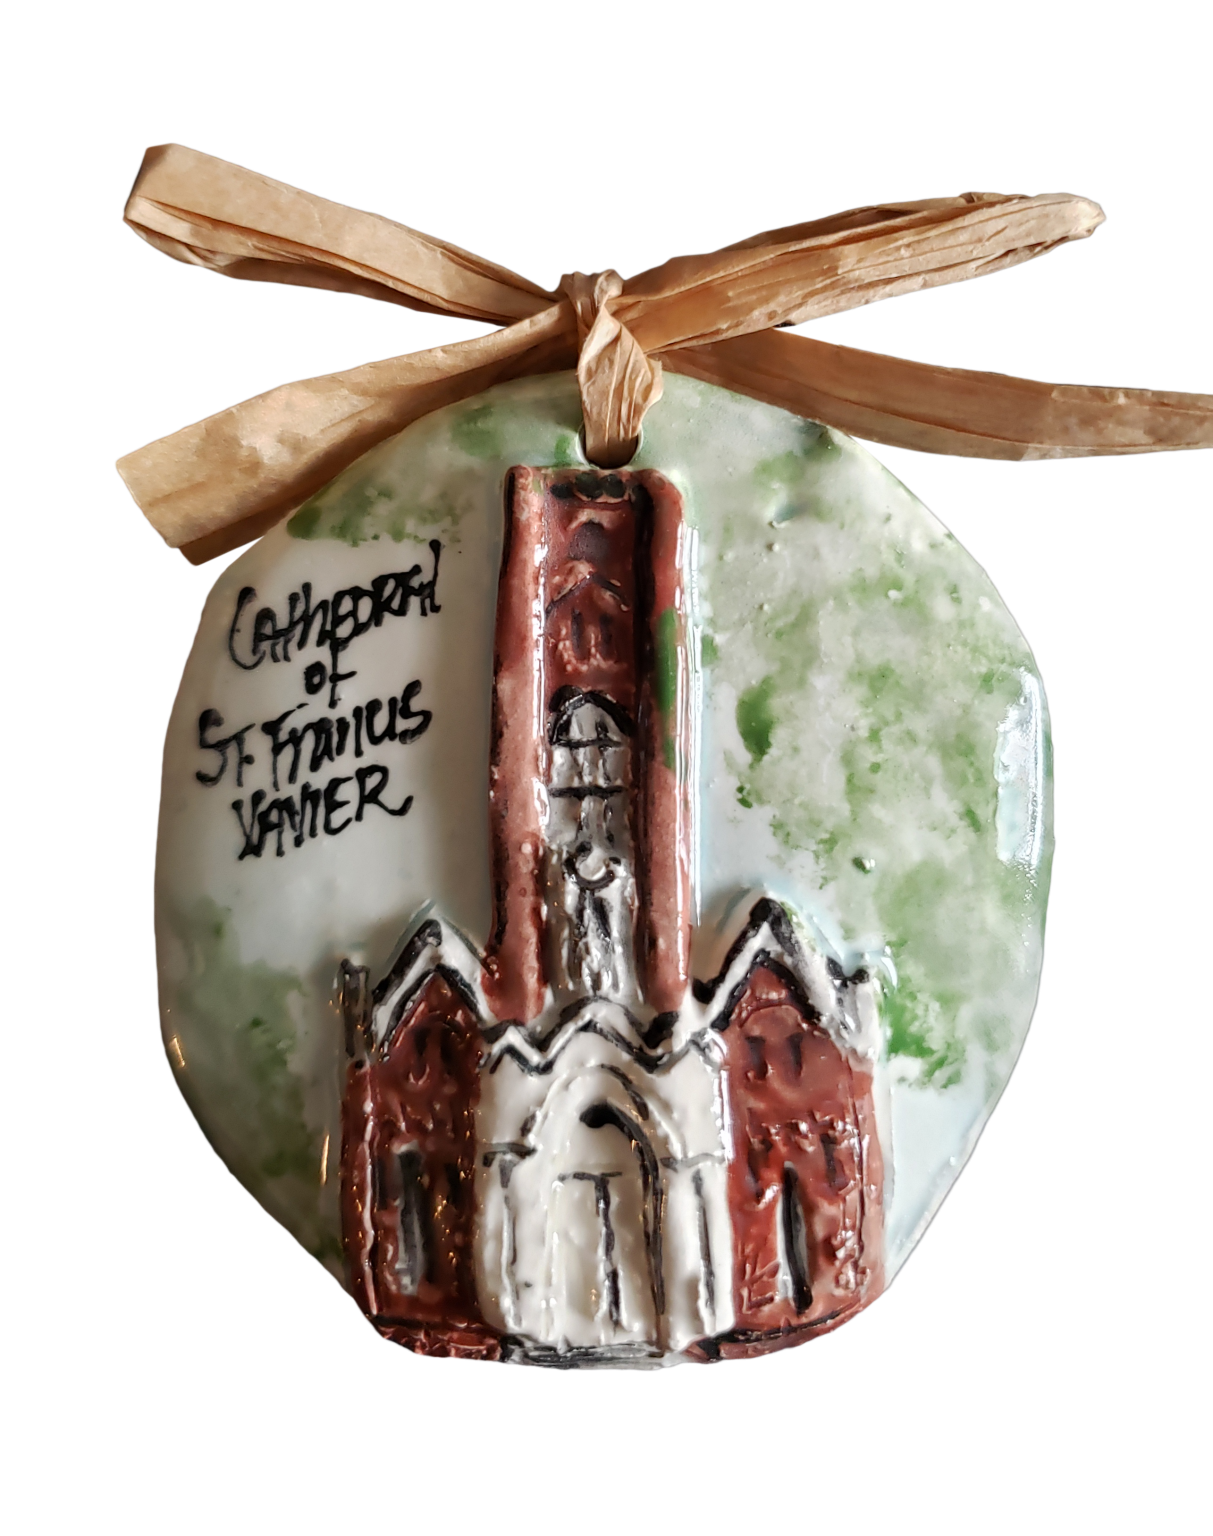 Architectural Memories St. Francis Xavier Cathedral Ornament